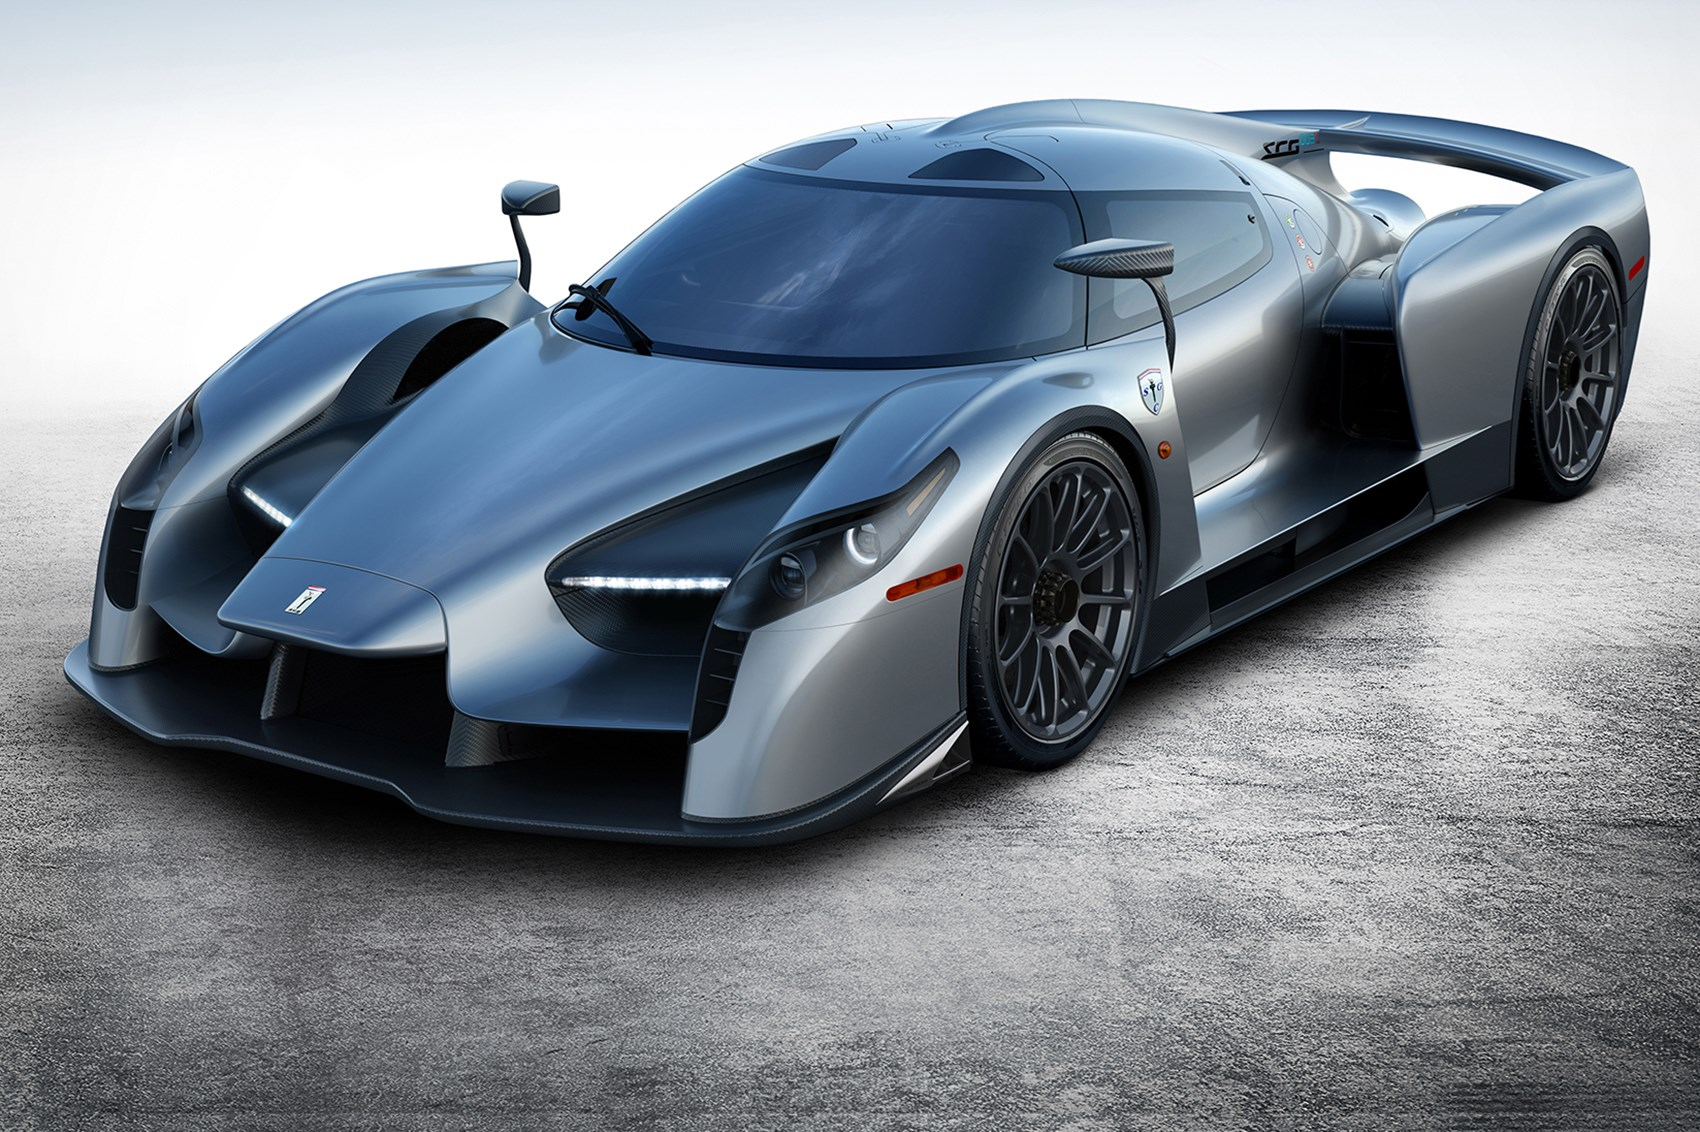 glickenhaus scg 003s plans to smash nordschleife lap. Black Bedroom Furniture Sets. Home Design Ideas